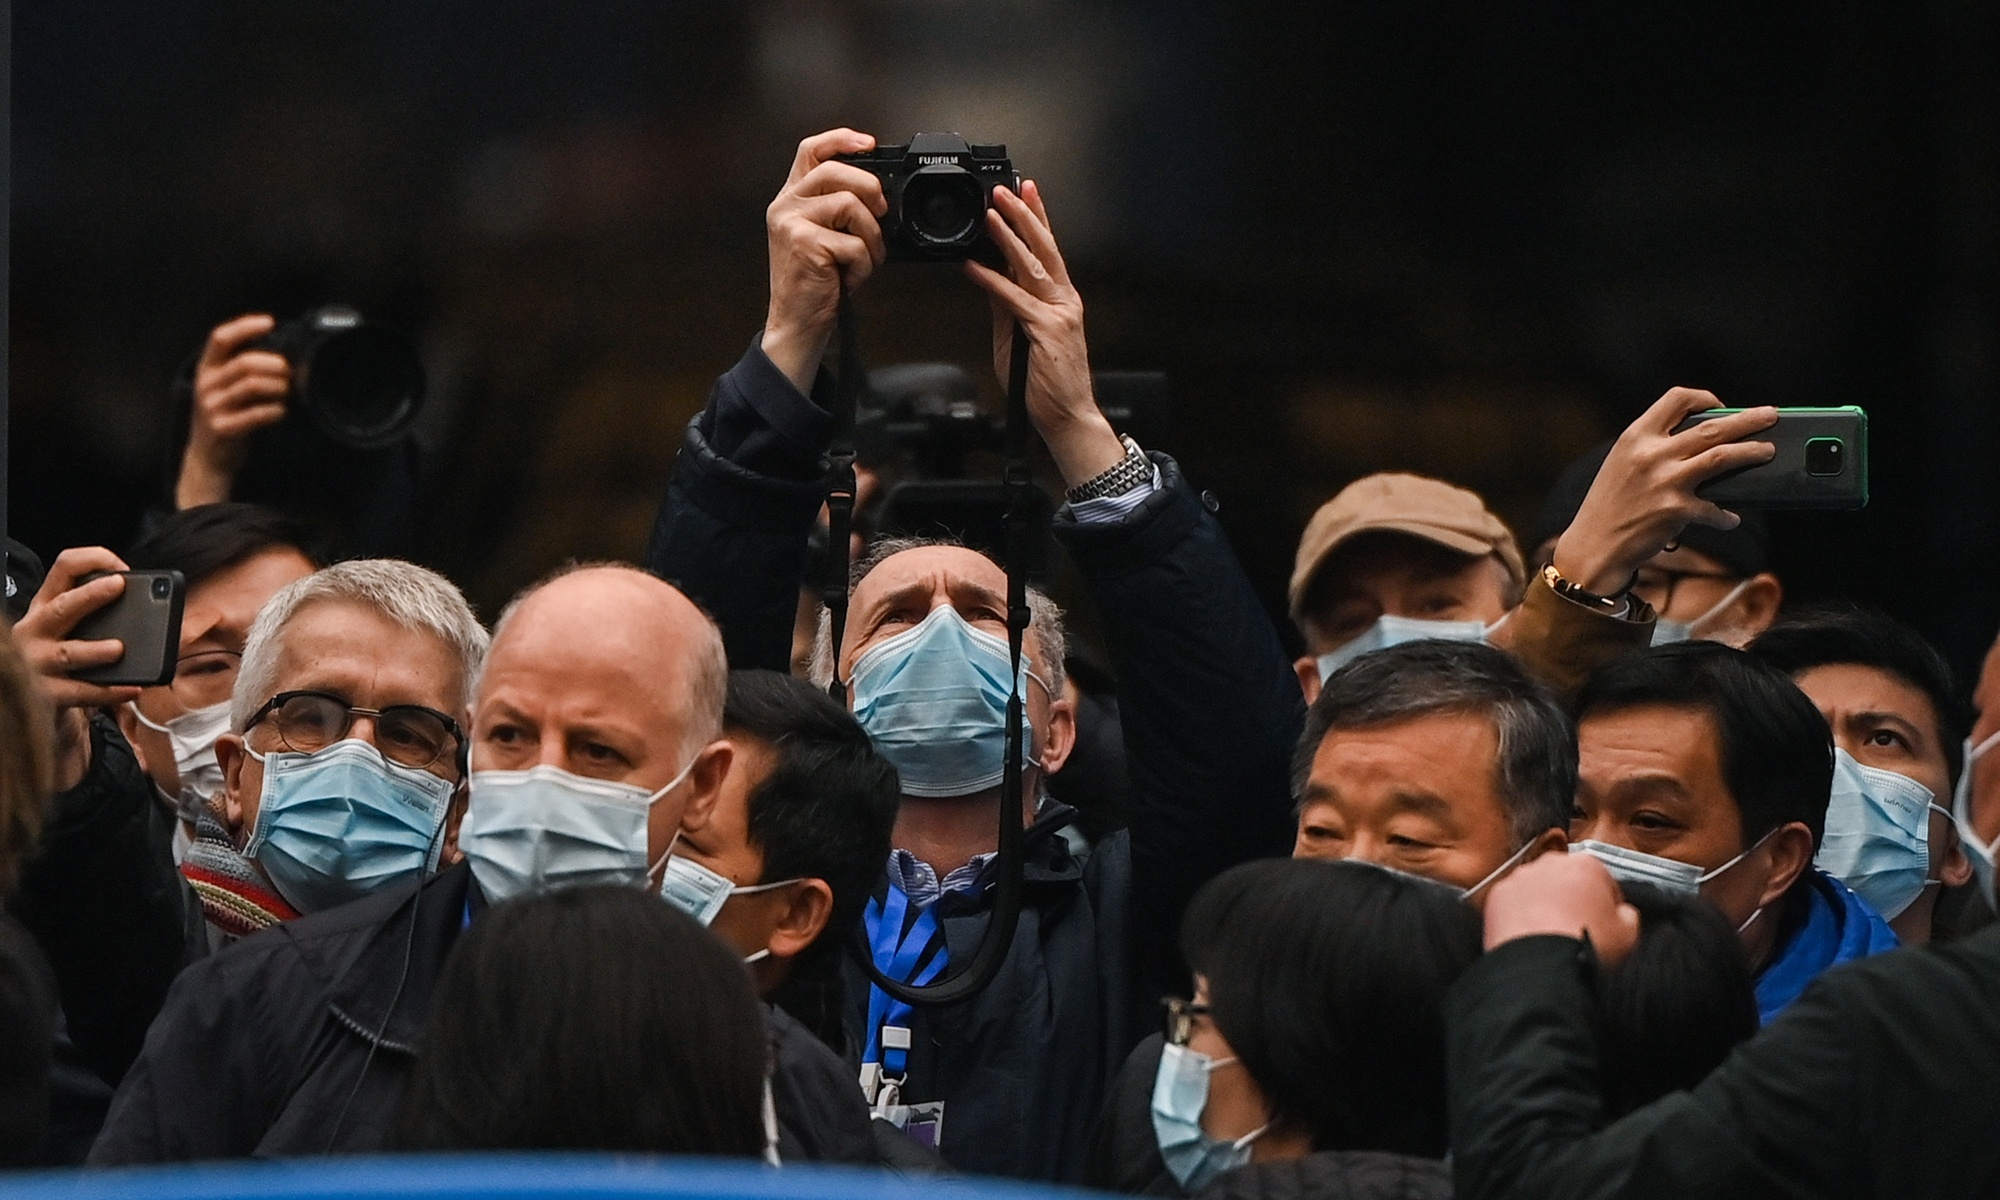 WHO expert team's visit to cold food area in Wuhan markets raises hypothesis again about virus sources